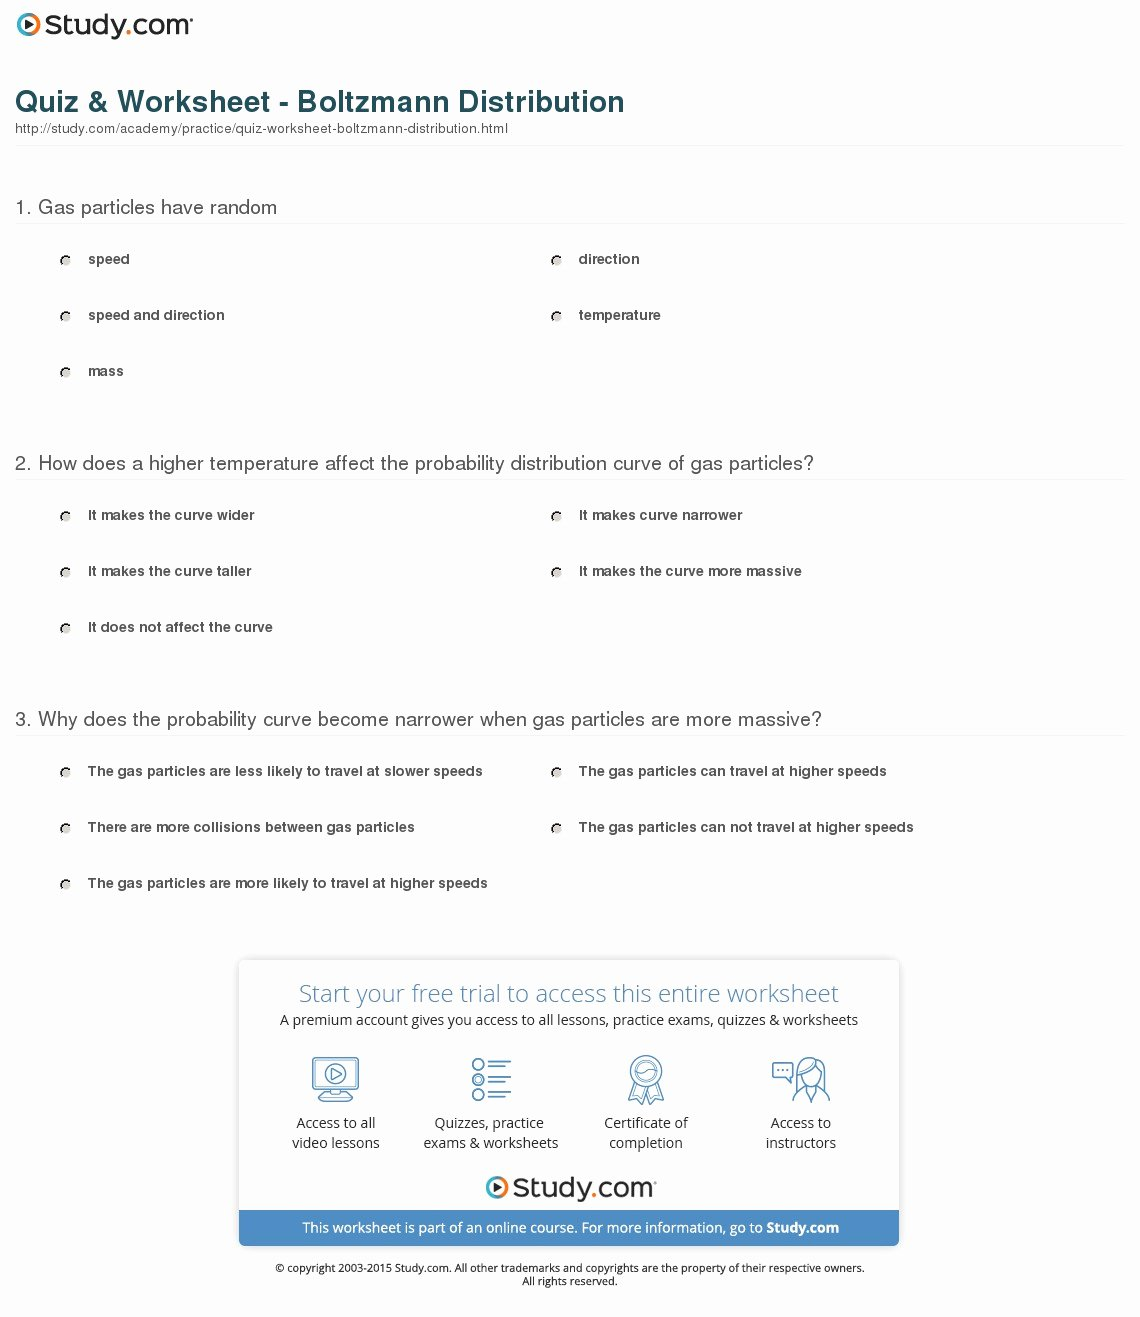 Arithmetic and Geometric Sequences Worksheet Inspirational Quiz & Worksheet Boltzmann Distribution